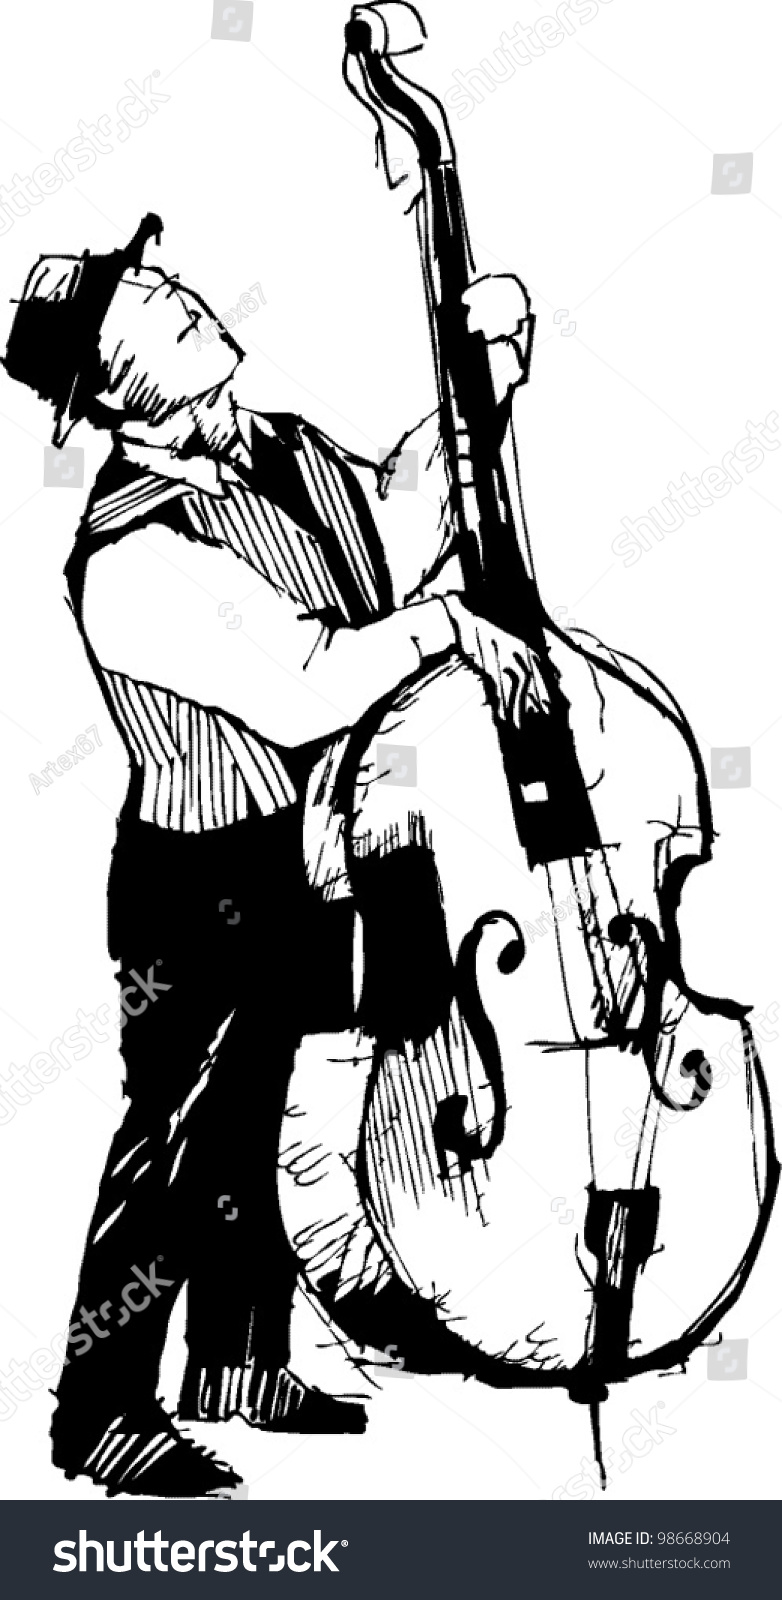 Black white sketch musician on bass stock vector royalty